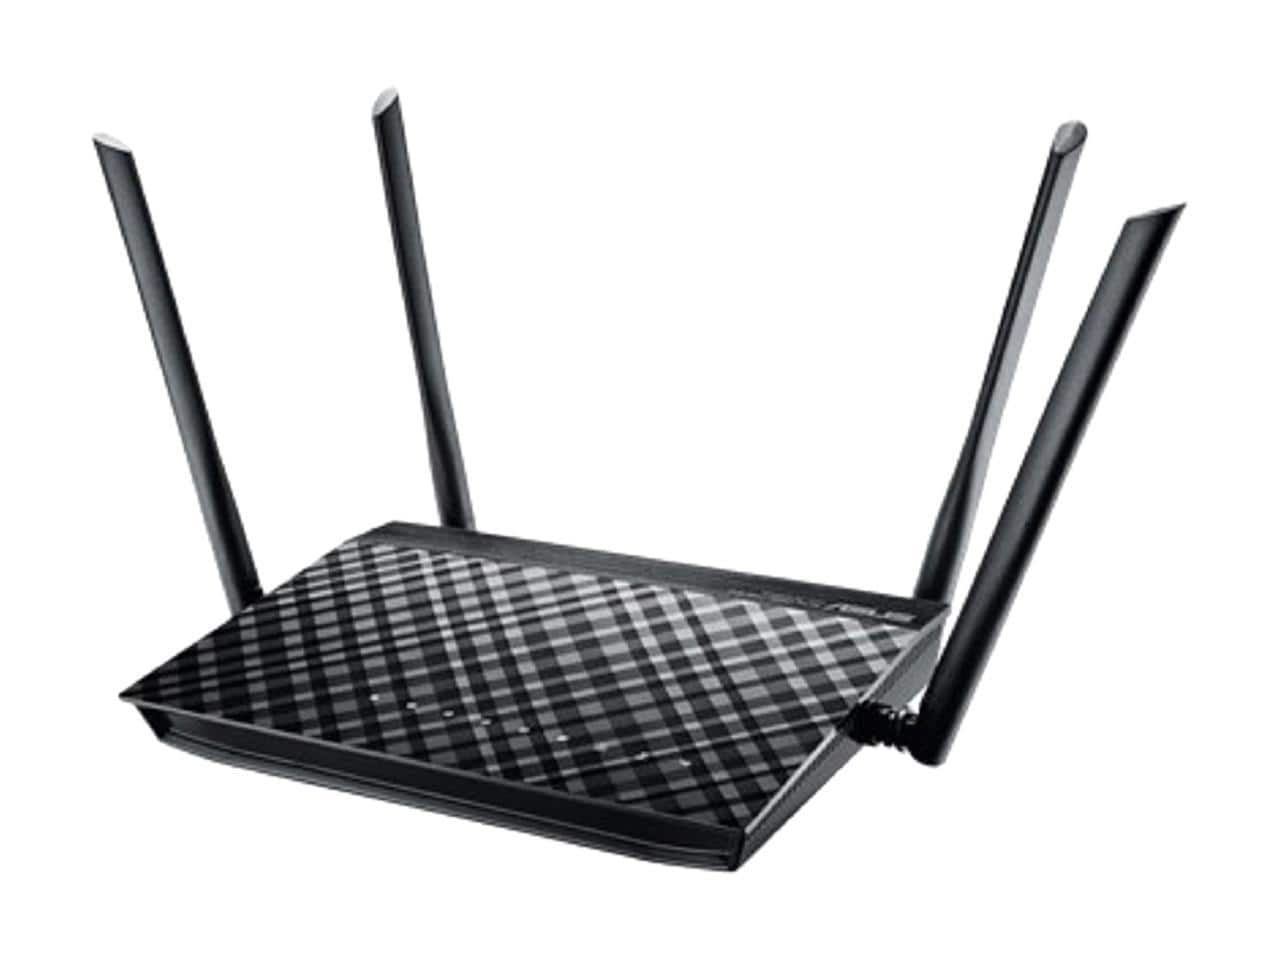 ASUS RT-AC1200G Dual-Band Router $40 AR FS @ Newegg